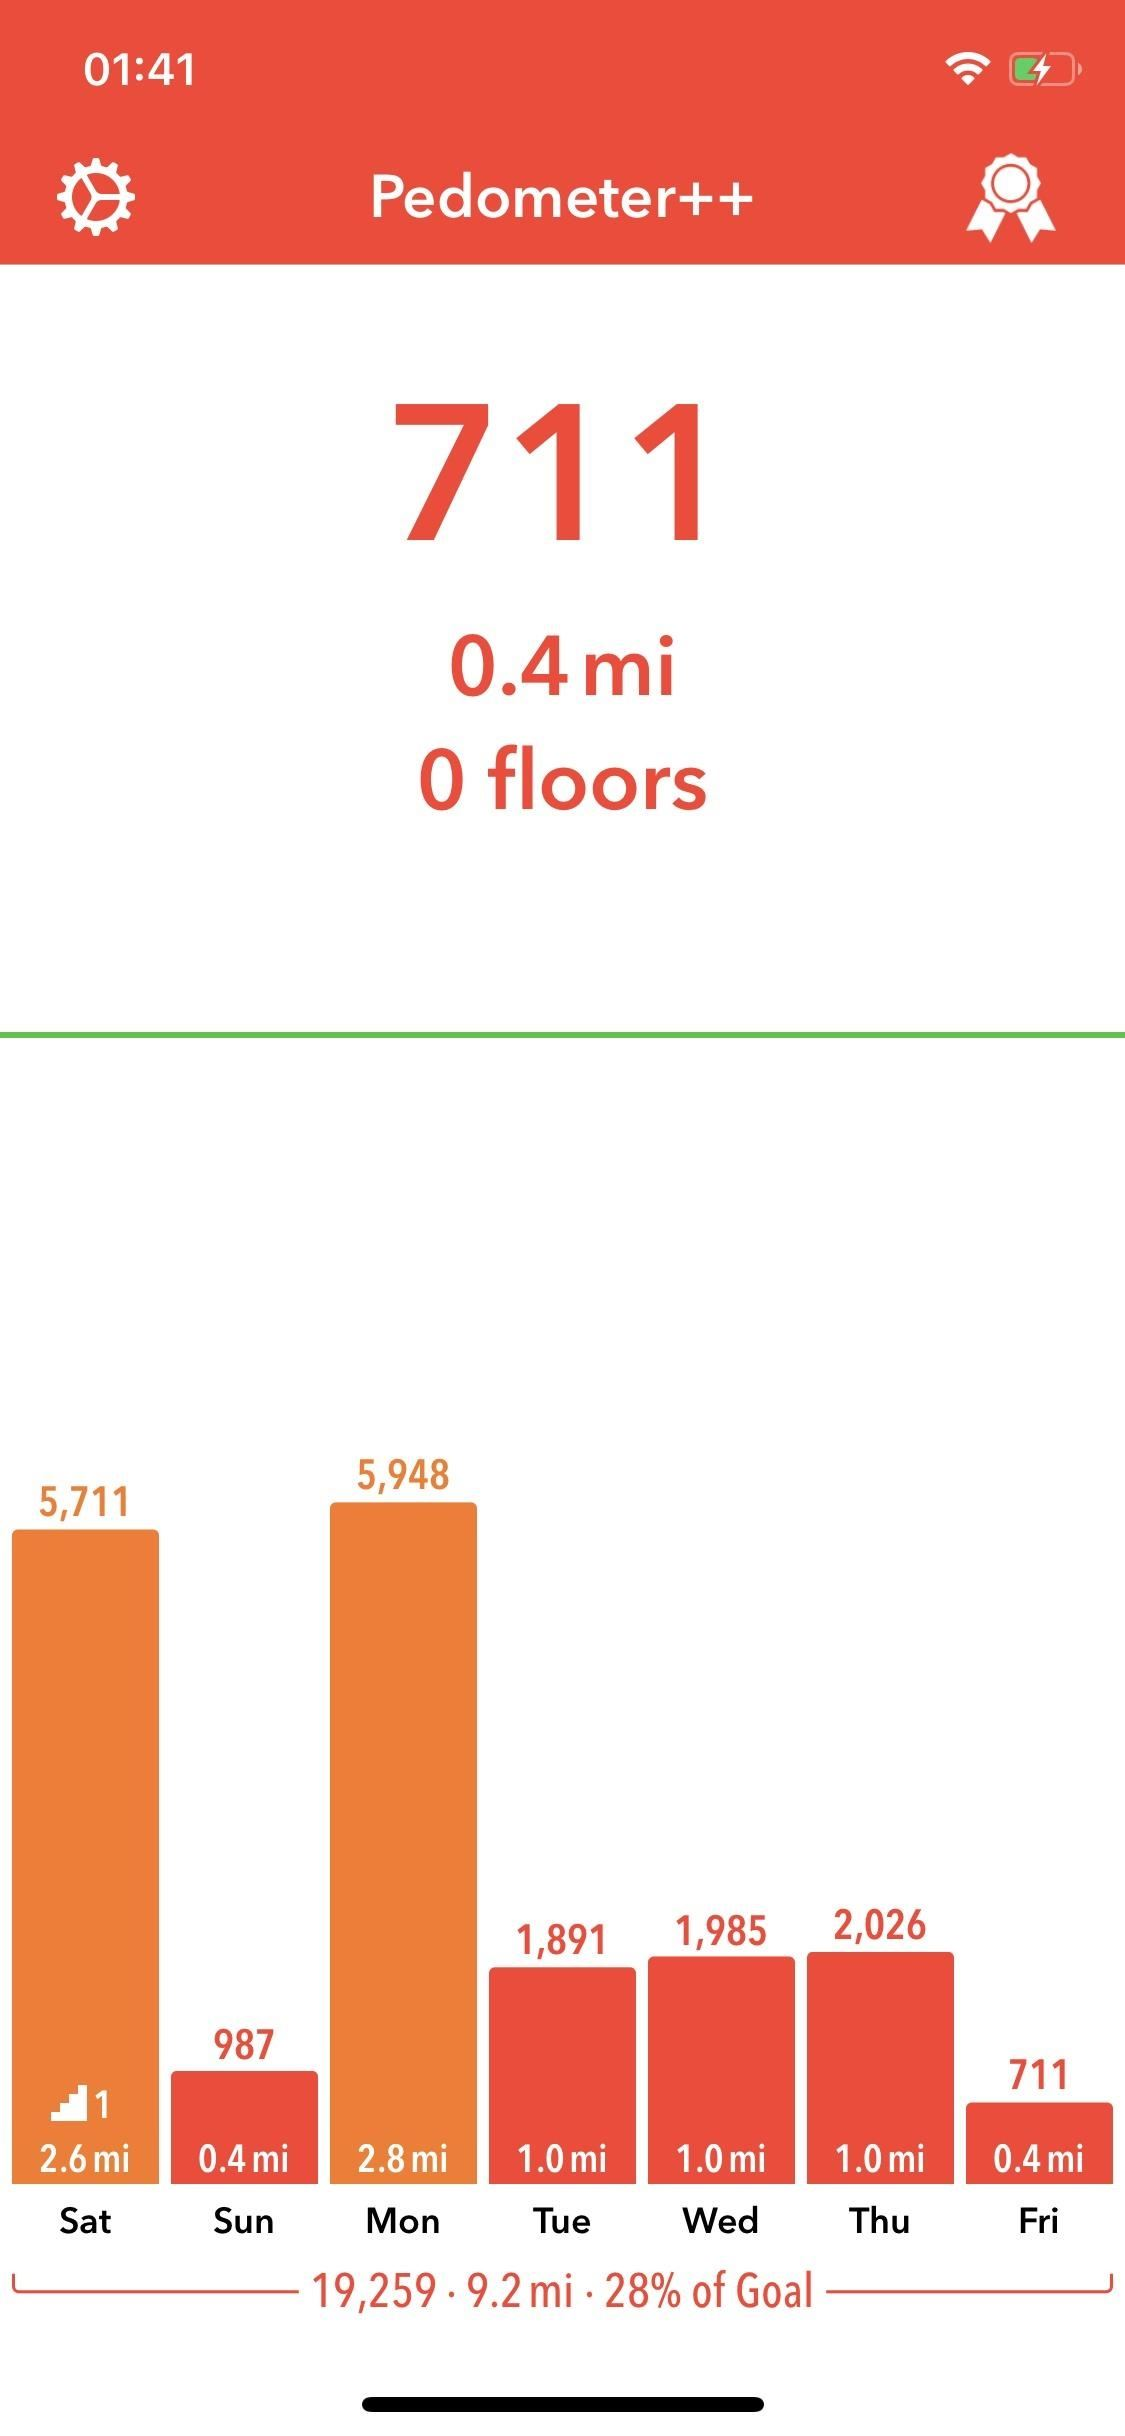 iPhone from counting steps and following fitness activity